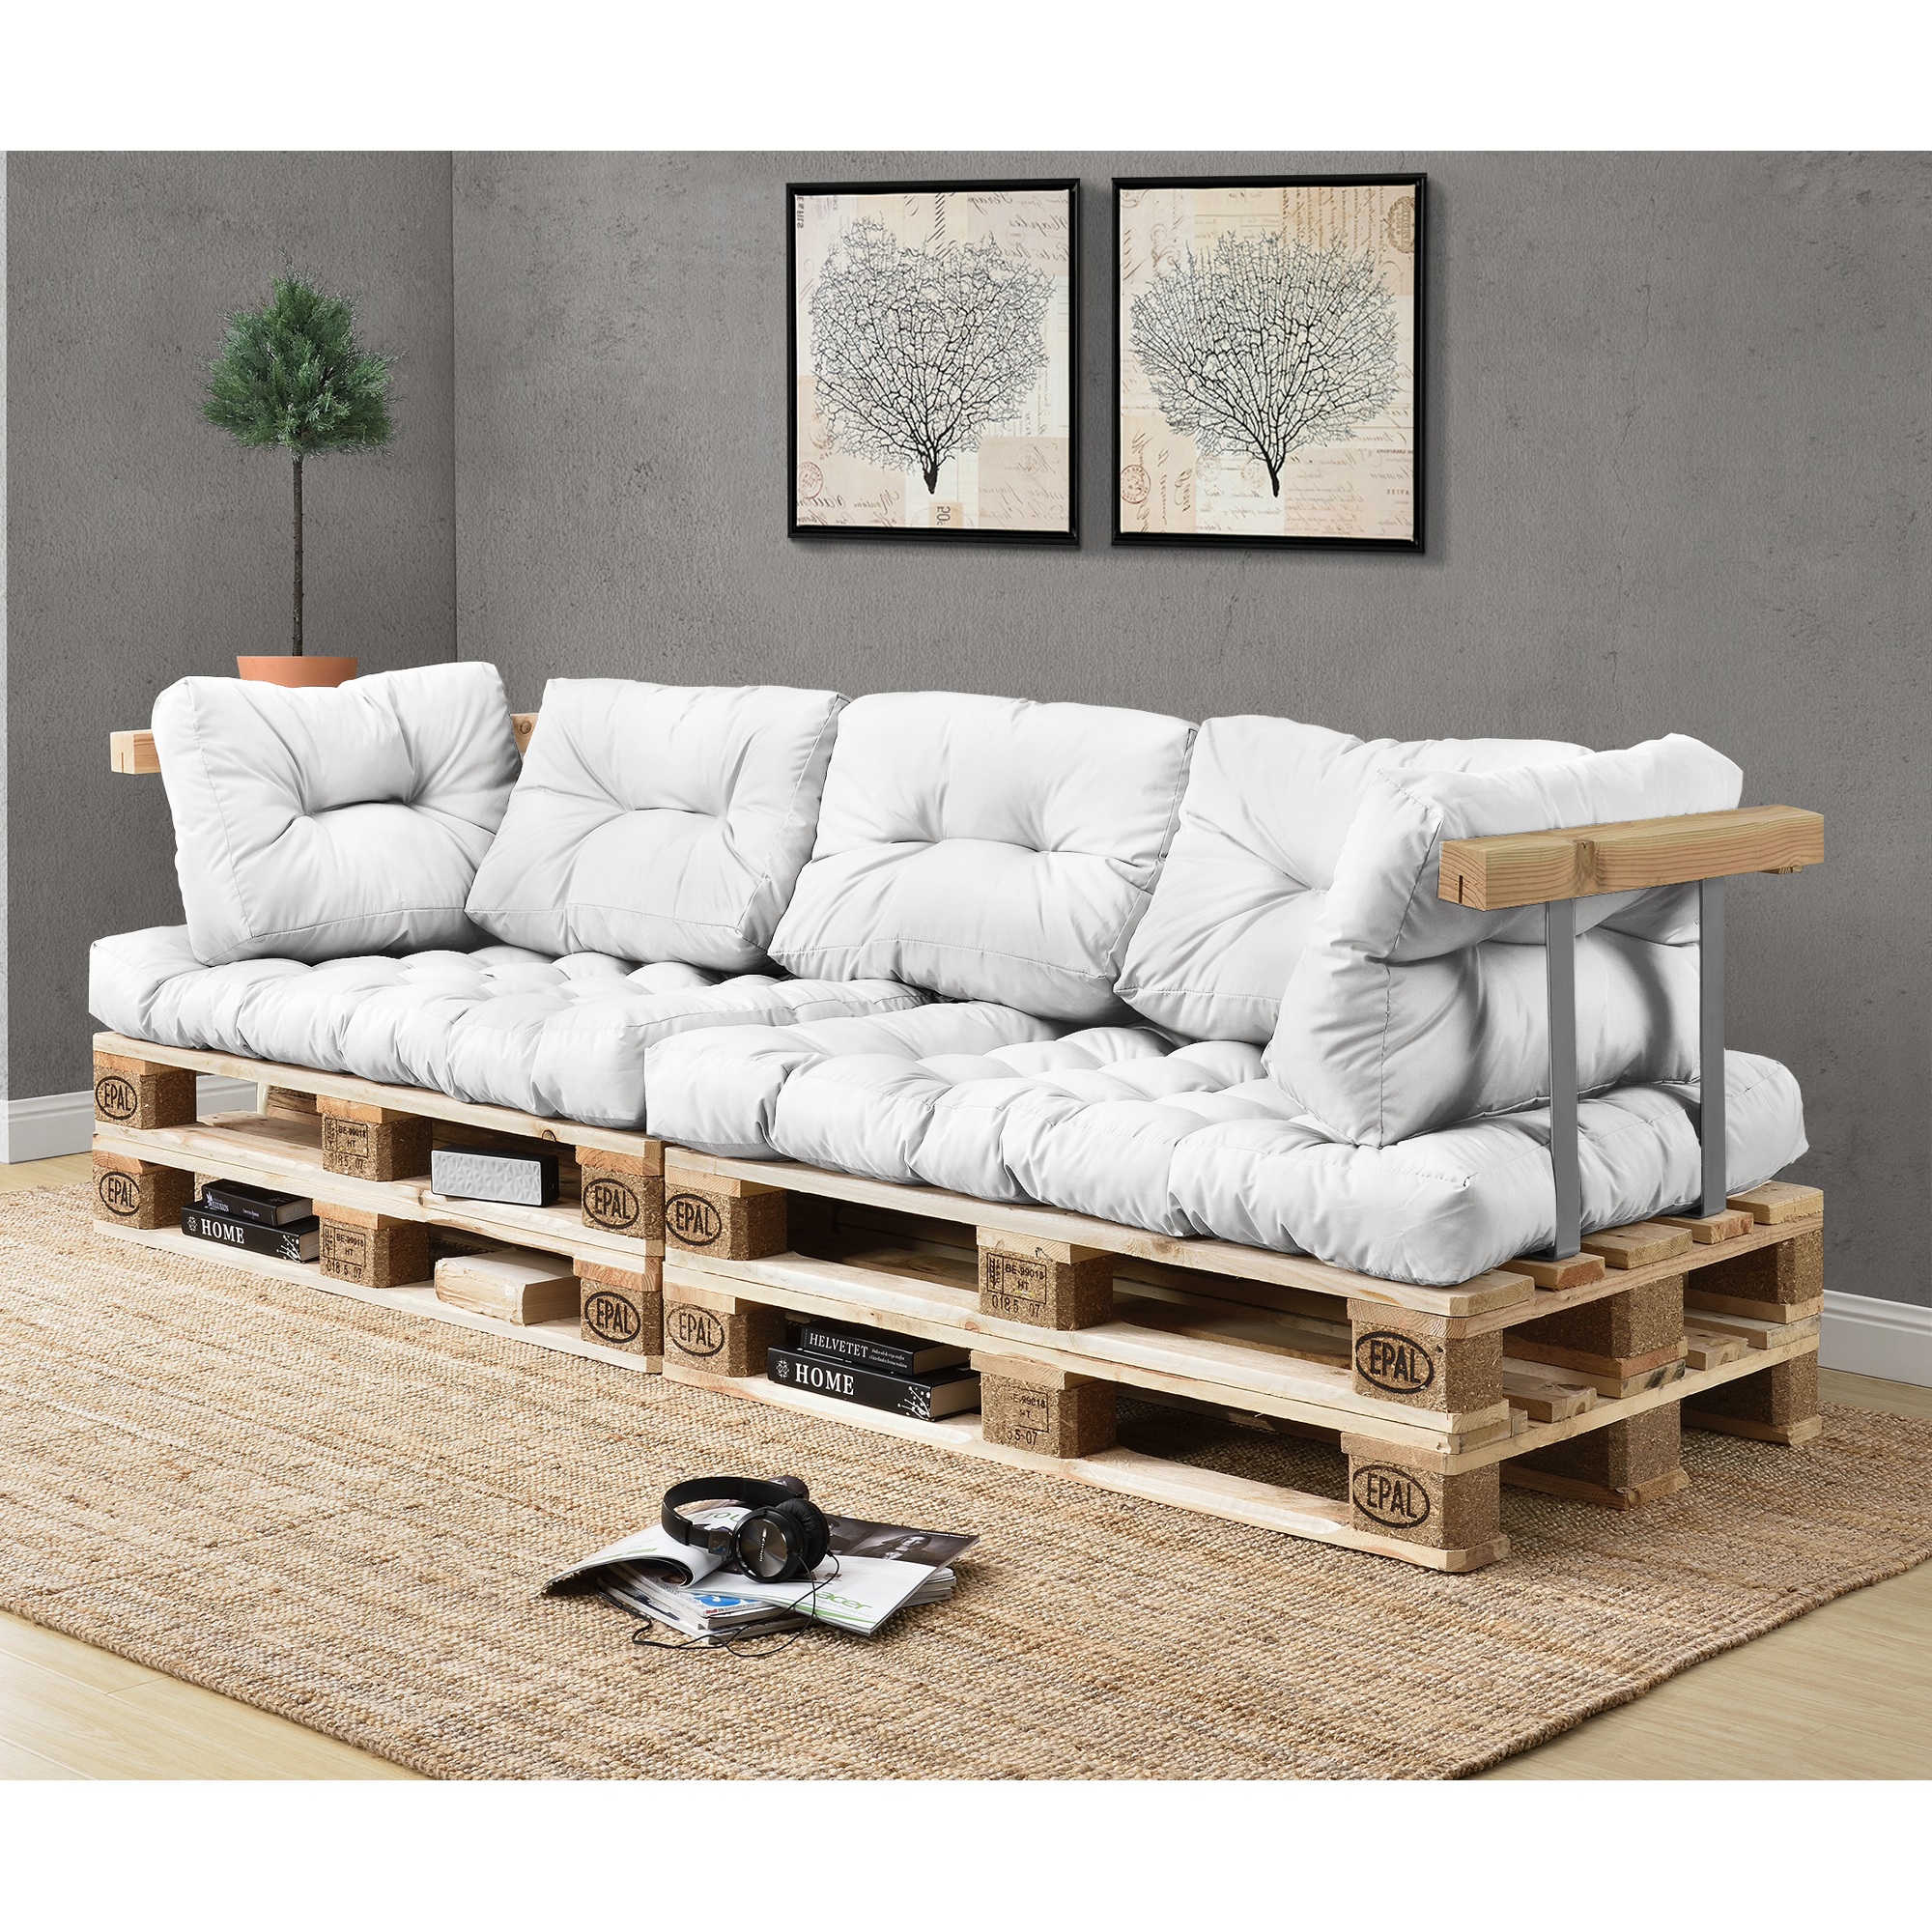 1x seat pad pallet cushions in outdoor pallets cushion sofa padding ebay. Black Bedroom Furniture Sets. Home Design Ideas